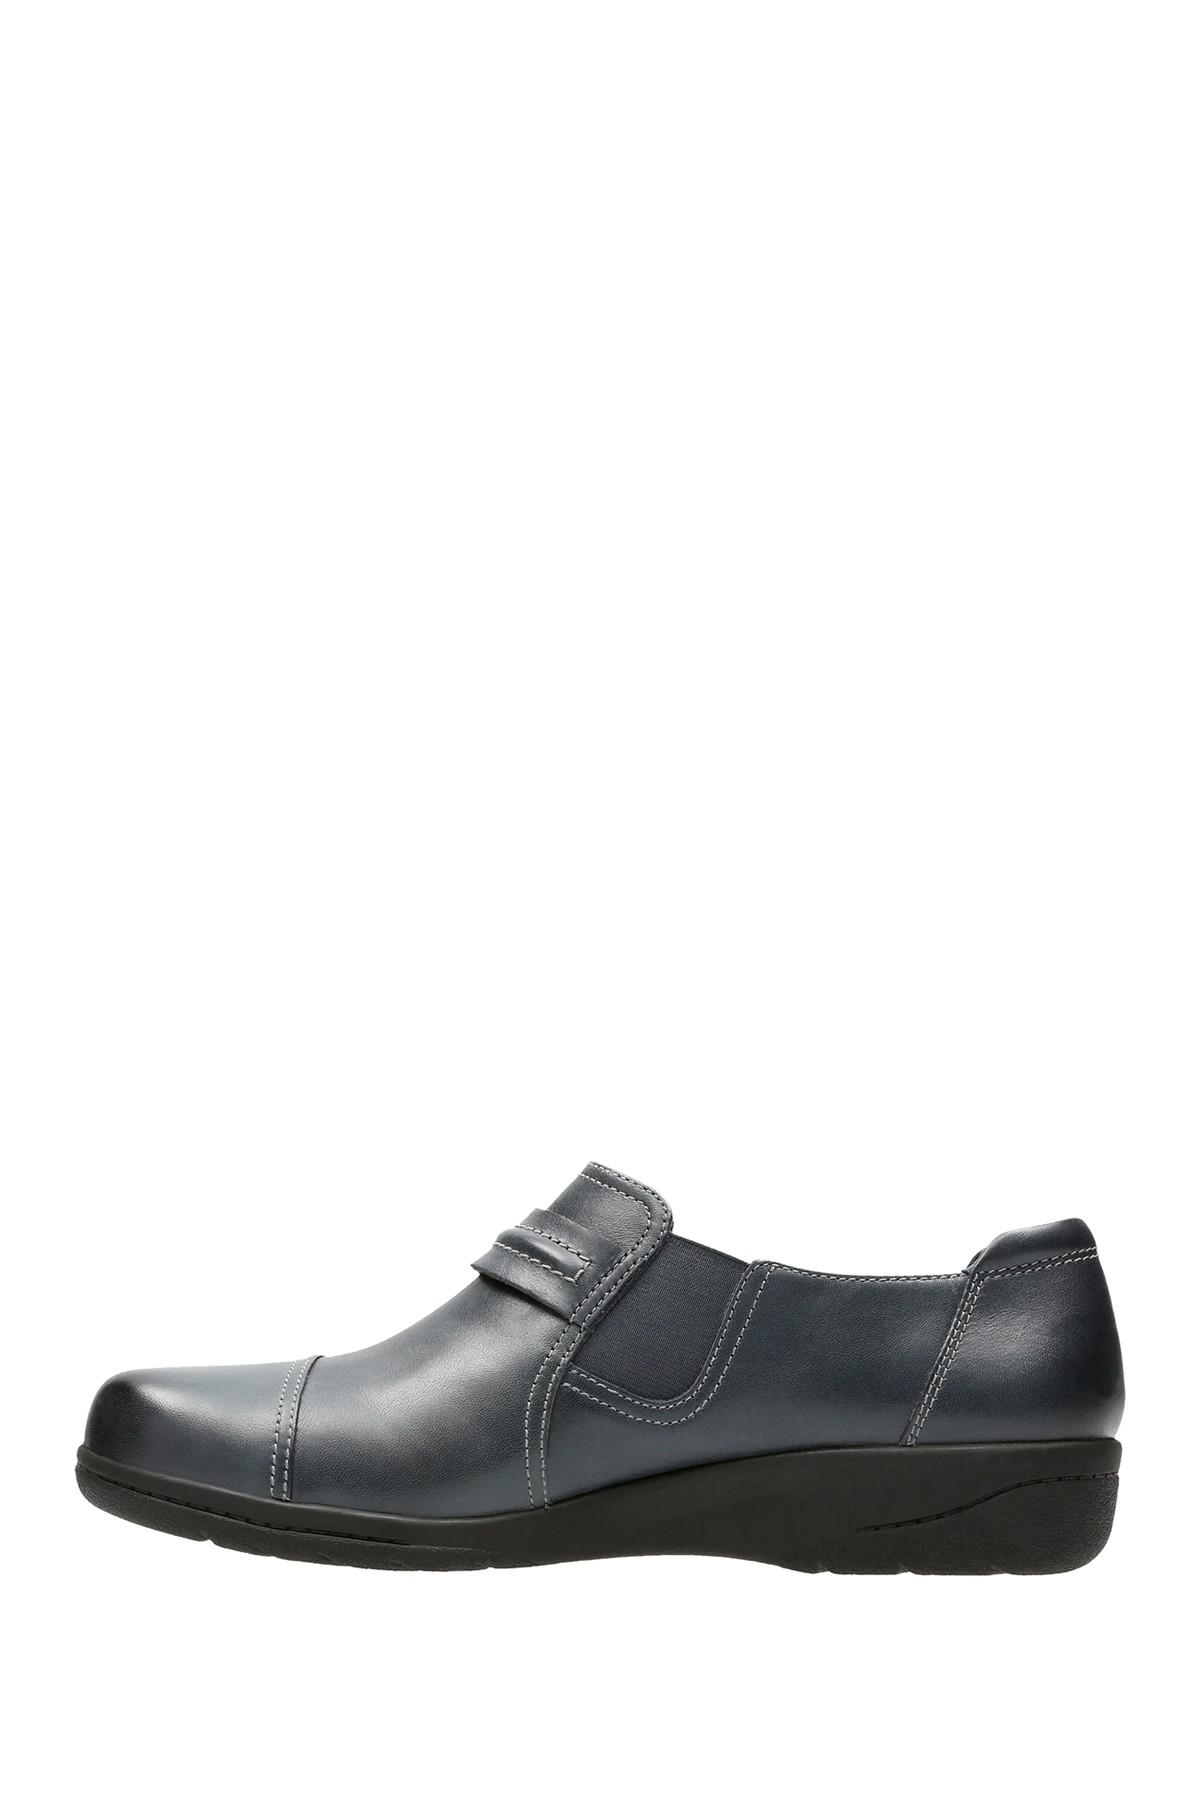 264591ece04 Clarks - Blue Cheyn Madi Leather Slip-on Loafer - Wide Width Available -  Lyst. View fullscreen